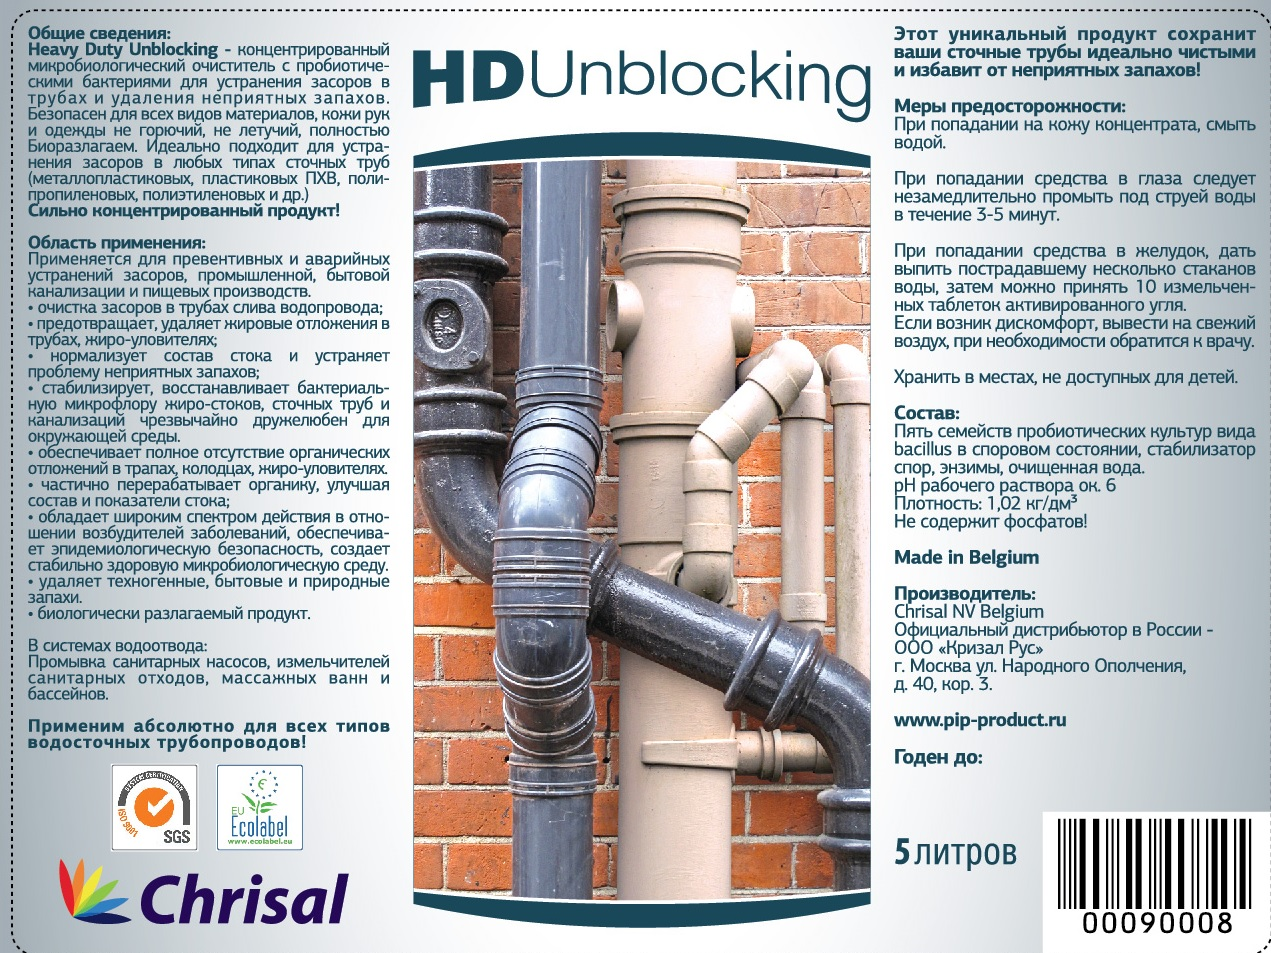 HD Unblocking